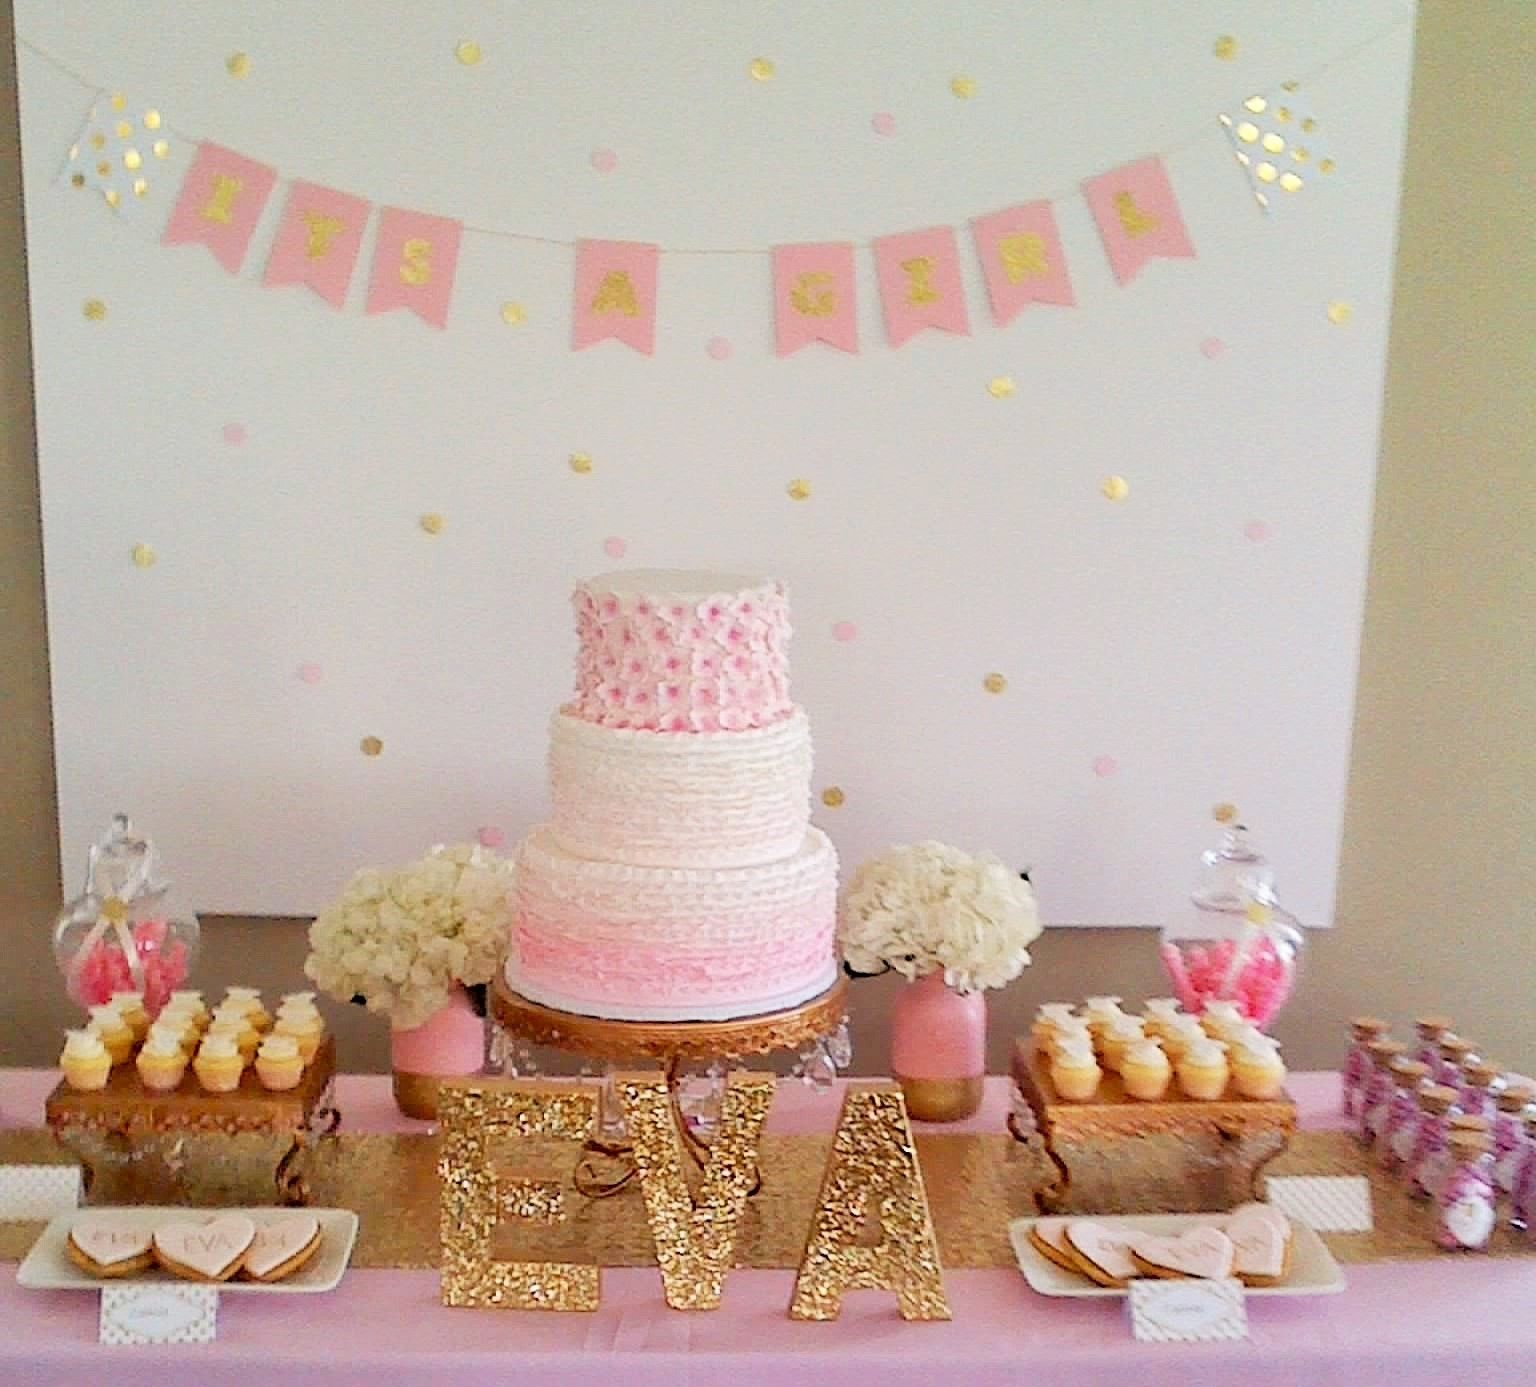 Pink Baby Shower Dessert Table Pink Ombre Ruffle Cake Mini Cupcakes And Gold And Pink Coo Baby Shower Cake Table Baby Shower Cakes Baby Shower Dessert Table